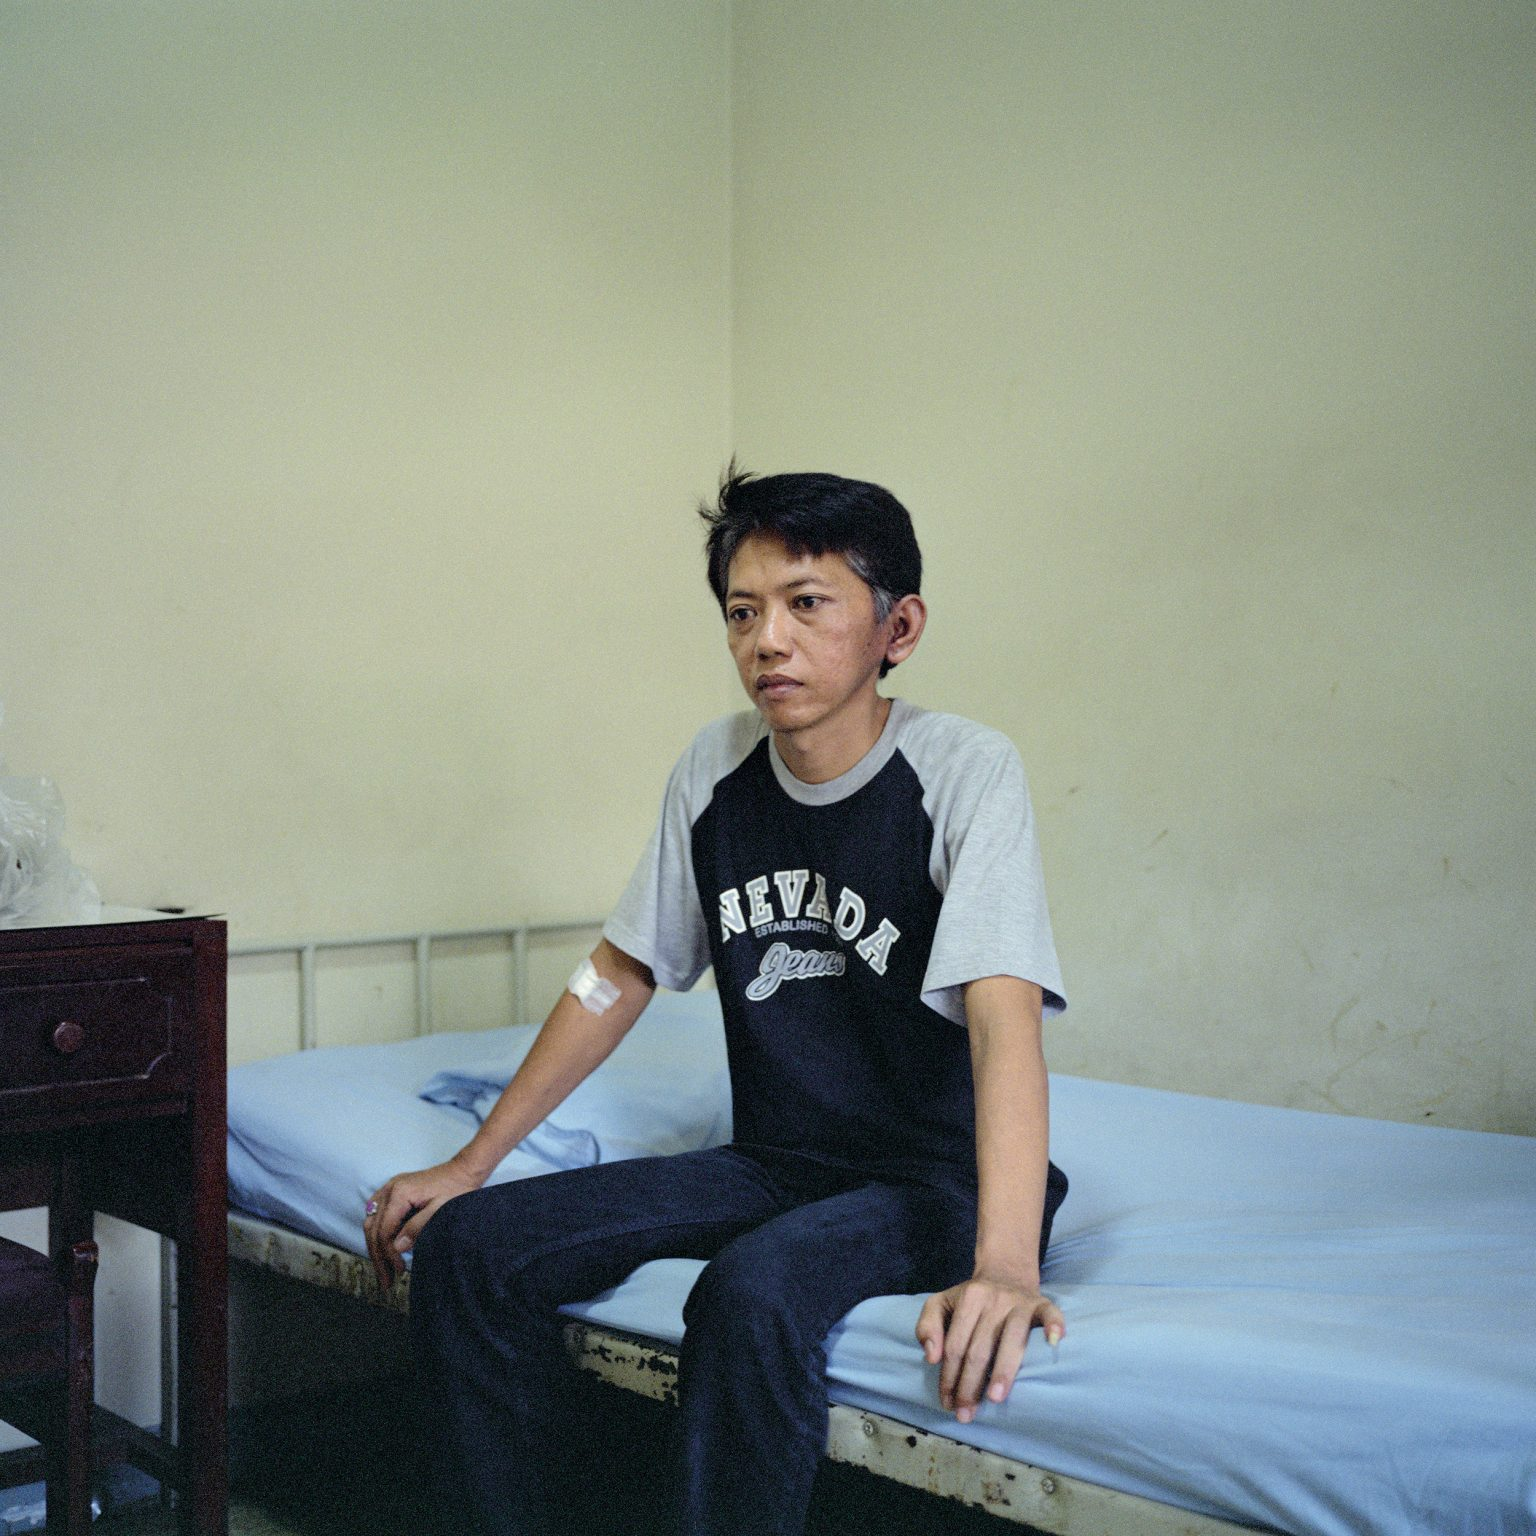 Jakarta, Indonesia. Cristian, aged 45 years, affected by a smoking-related cancer in his lung, which has spread to his brain, is now undergoing radiotherapy. In Indonesia, such therapies are not paid for by the government, and a cycle of radiotherapy costs between USD 1,800 to 2,400, an amount that few people can afford. Cigarette smoking causes the death of about 200,000 Indonesians each year. The number of smokers in growing economies is increasing, together with the rate of smoking-related cancers. In the 1990s smoke killed 4 million people in the world, with 50% in low and middle income-countries; today that number has risen to 6 million, with about 80% of the deaths occurring in low and middle income countries.